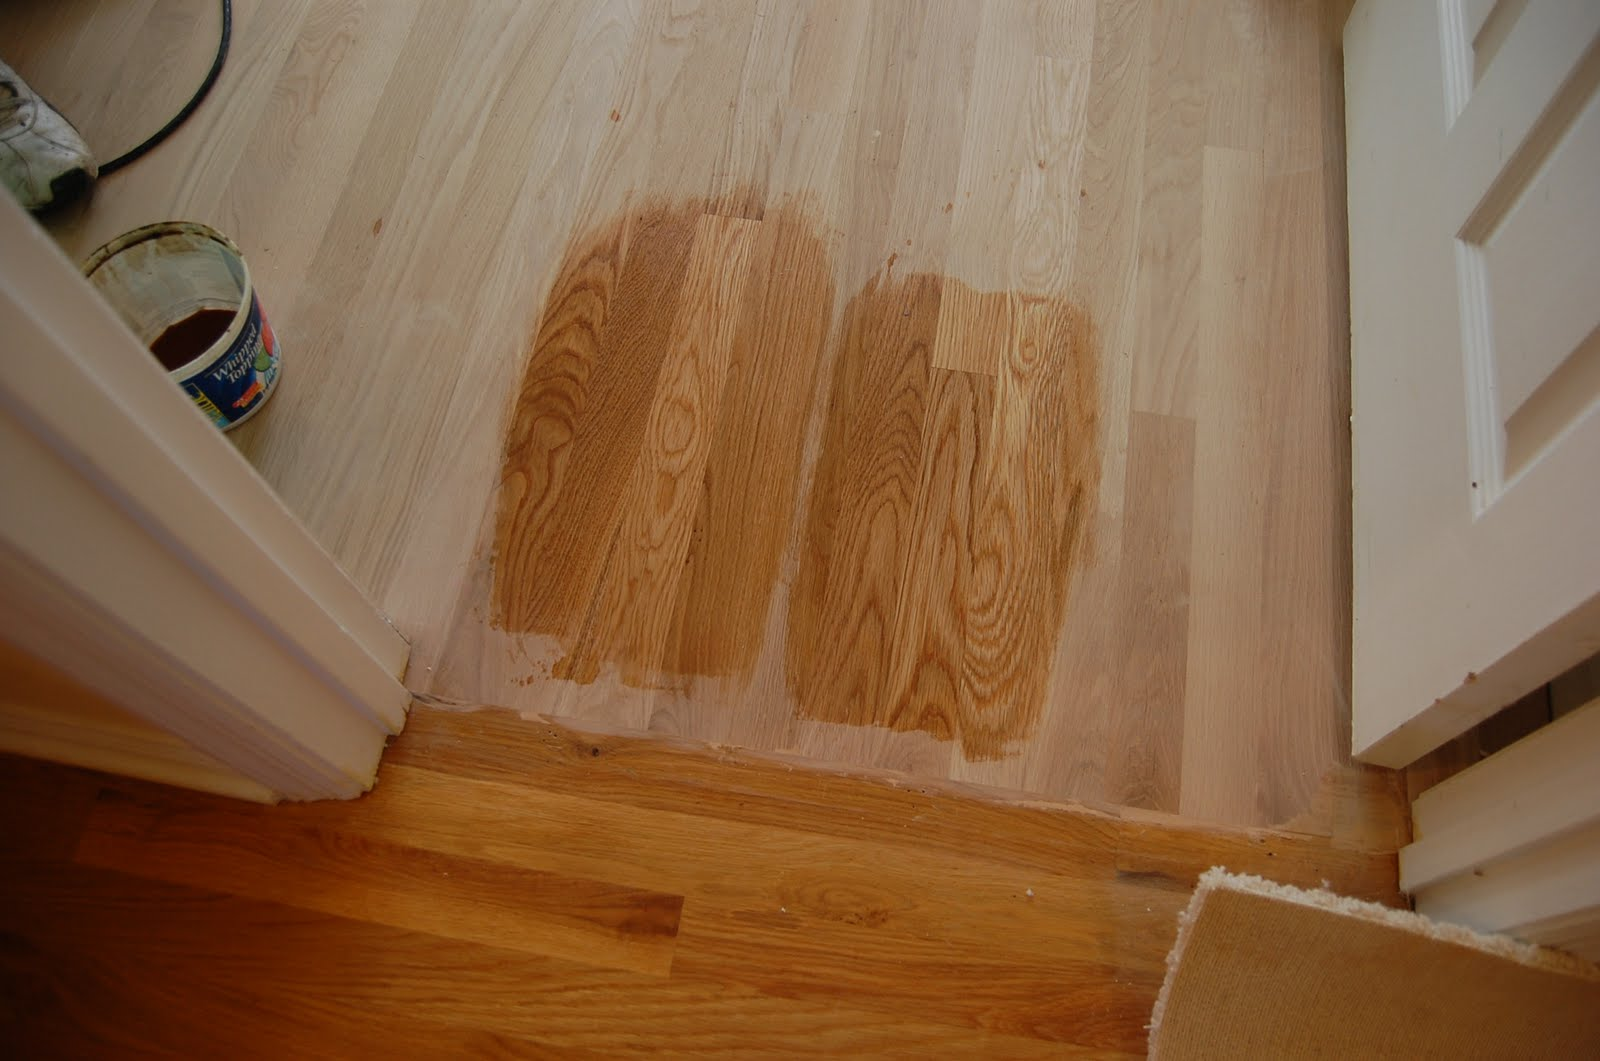 Wood Floor Two Rooms Different Colors 1600 x 1061